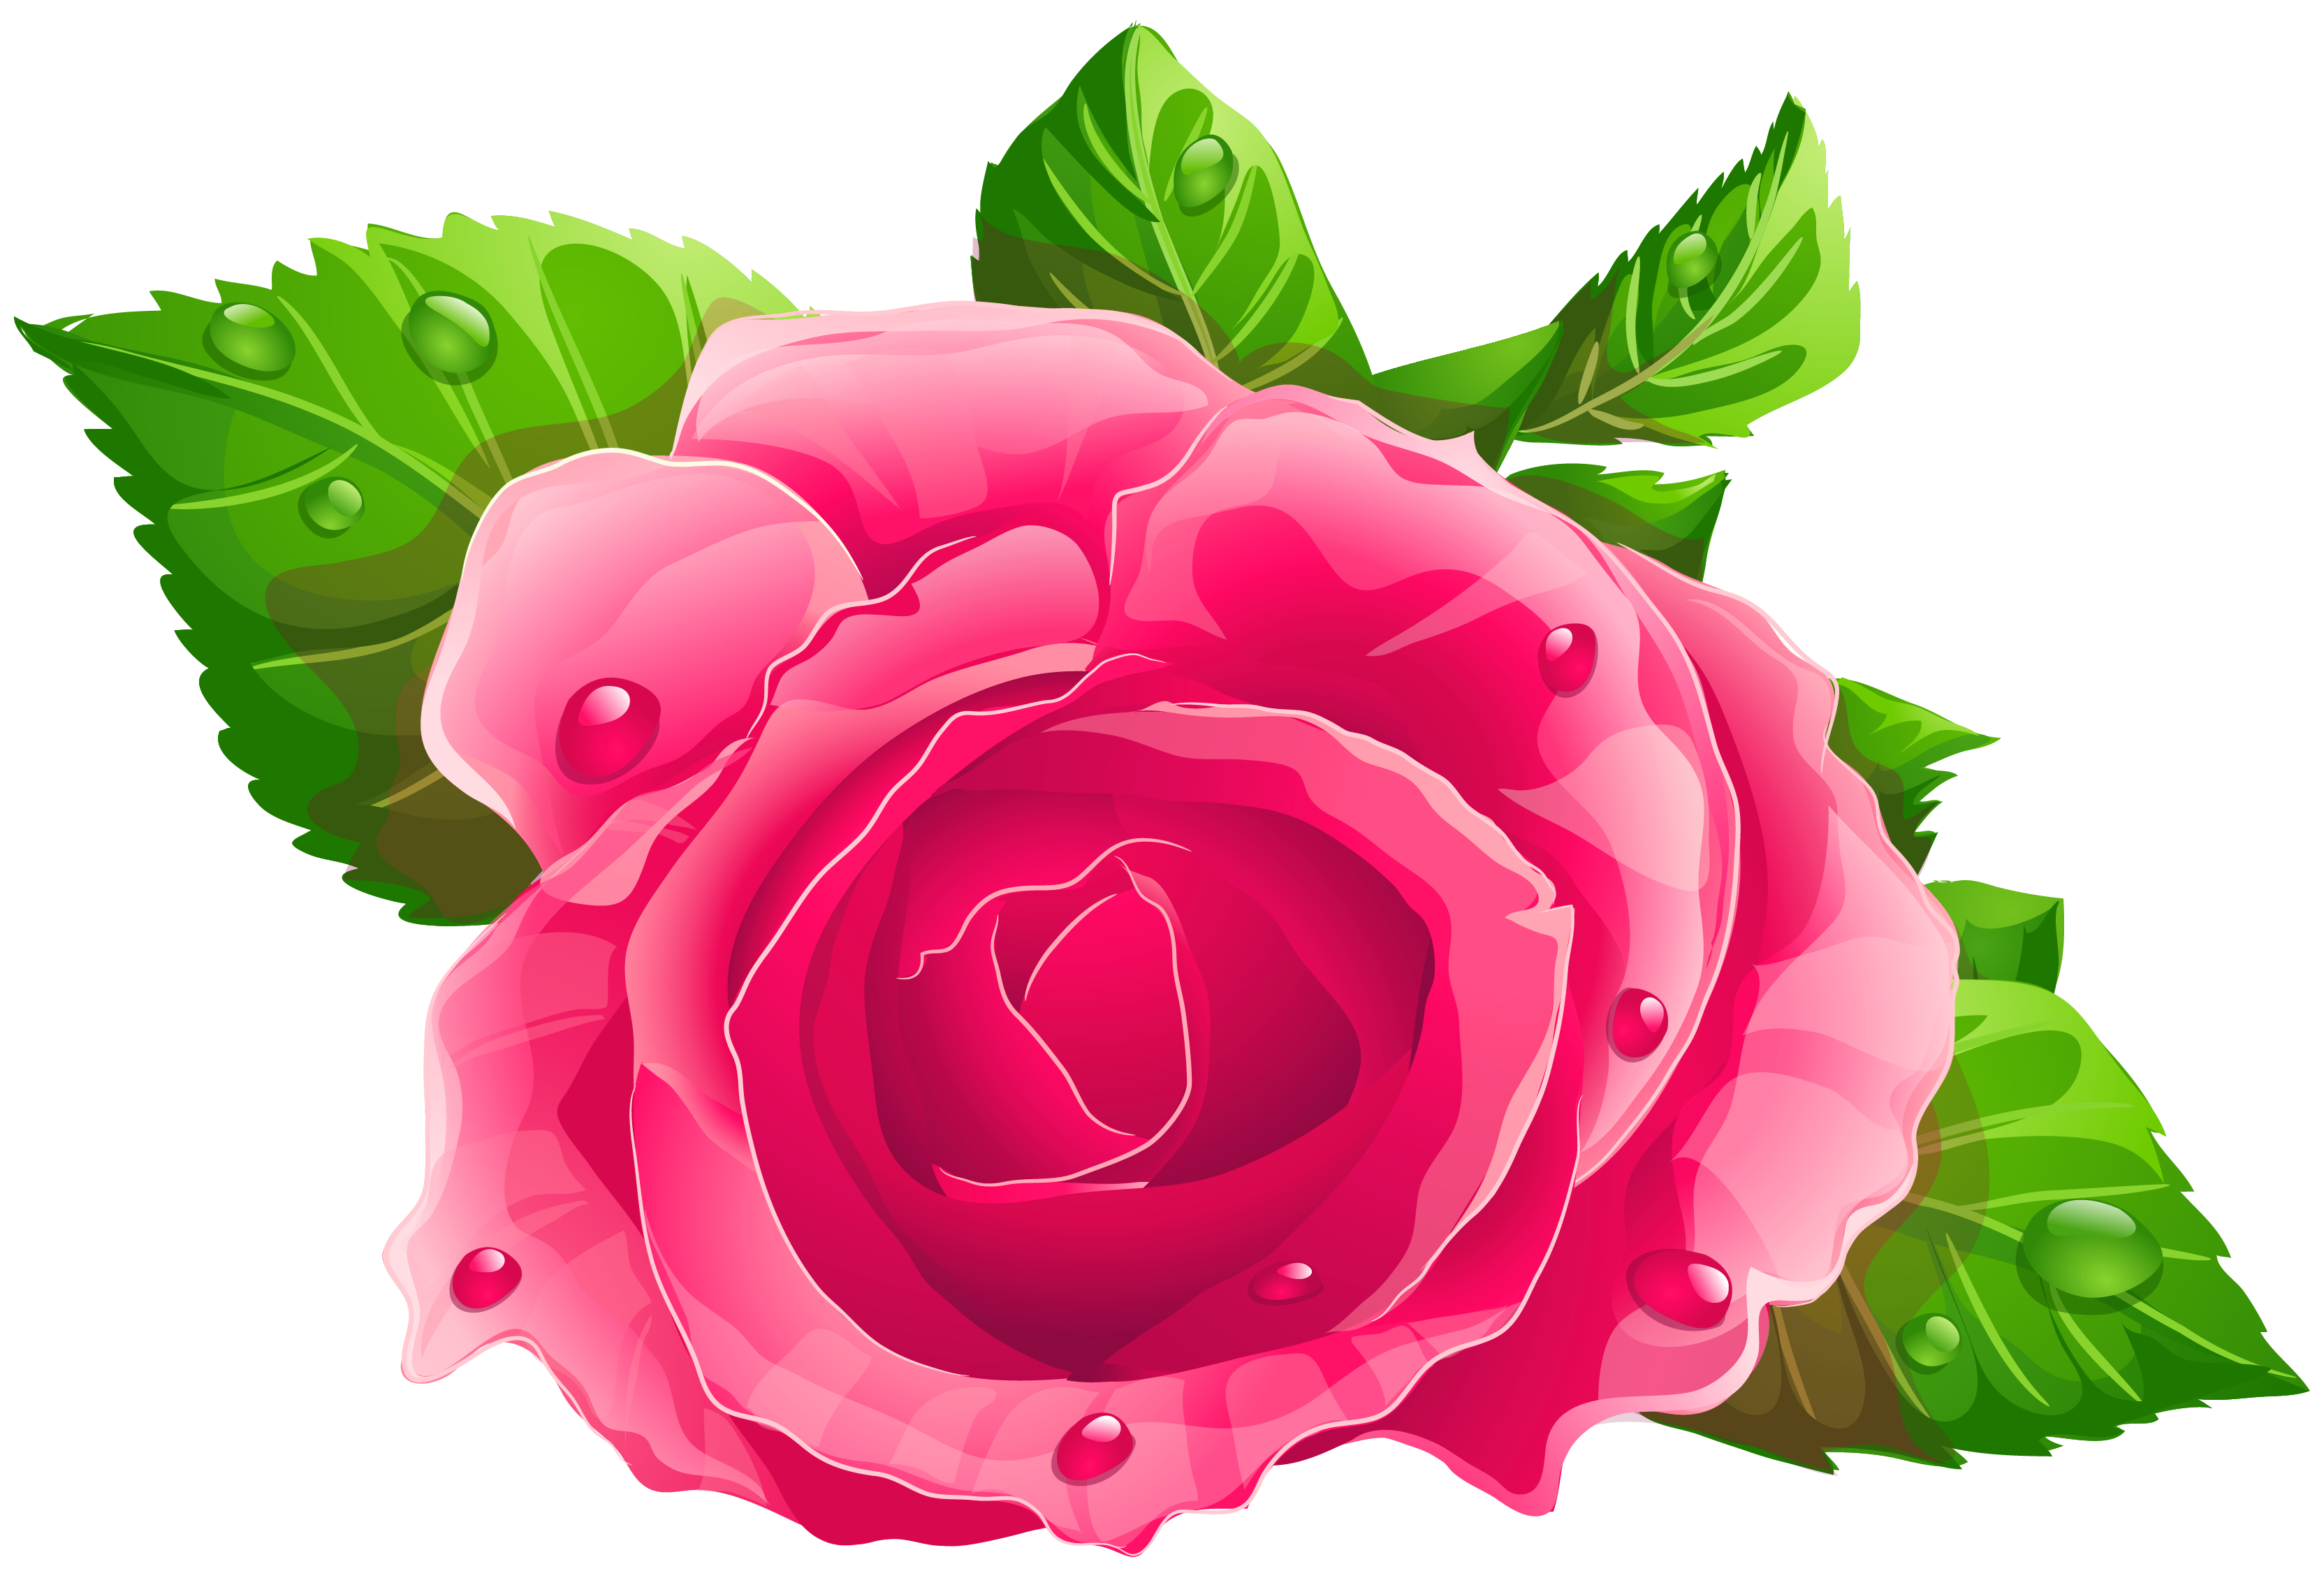 Roses pink png. Rose clipart gallery yopriceville